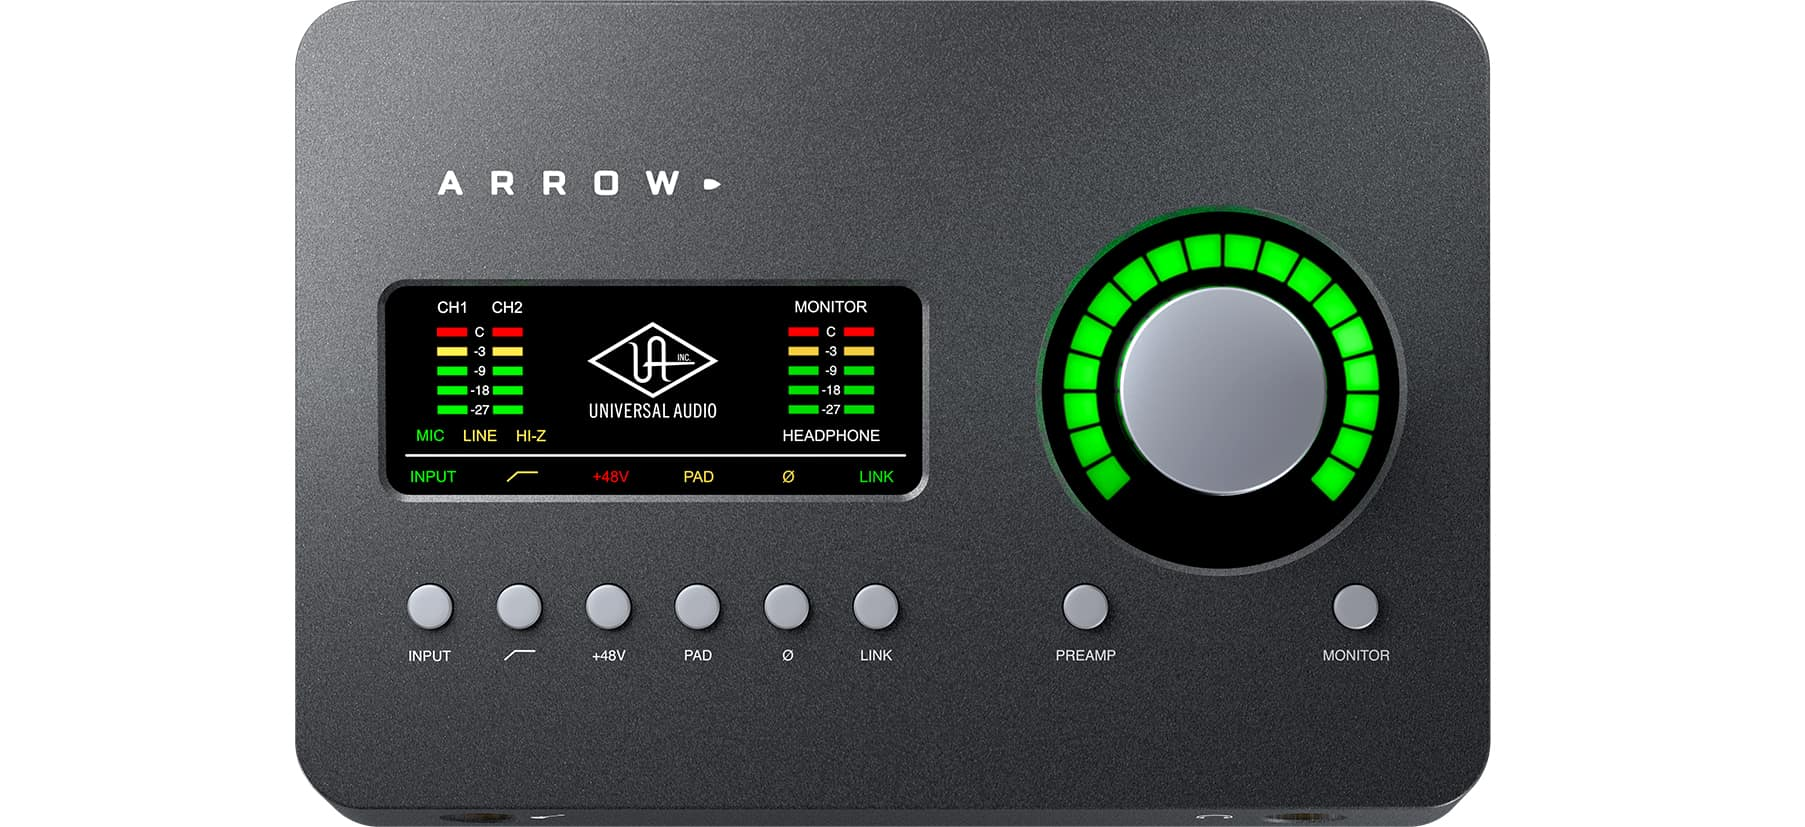 La guitara music center - Universal Audio Arrow Thunderbolt 3